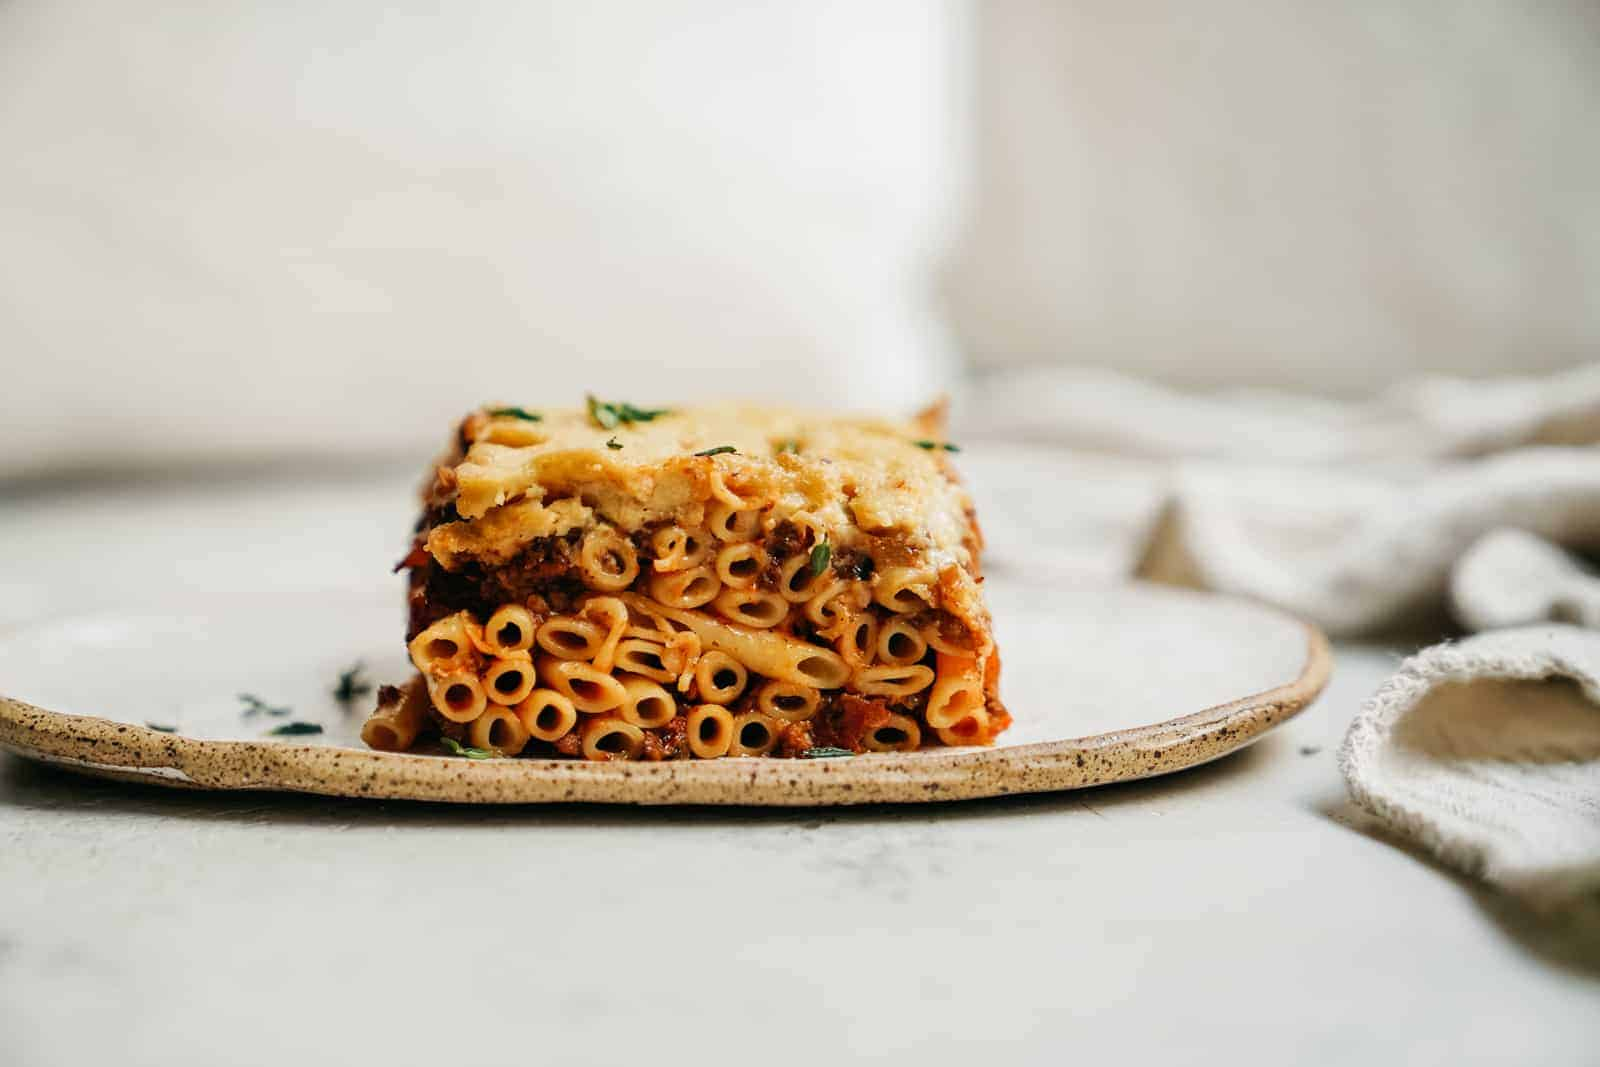 Side of Greek Pastitsio on white plate.